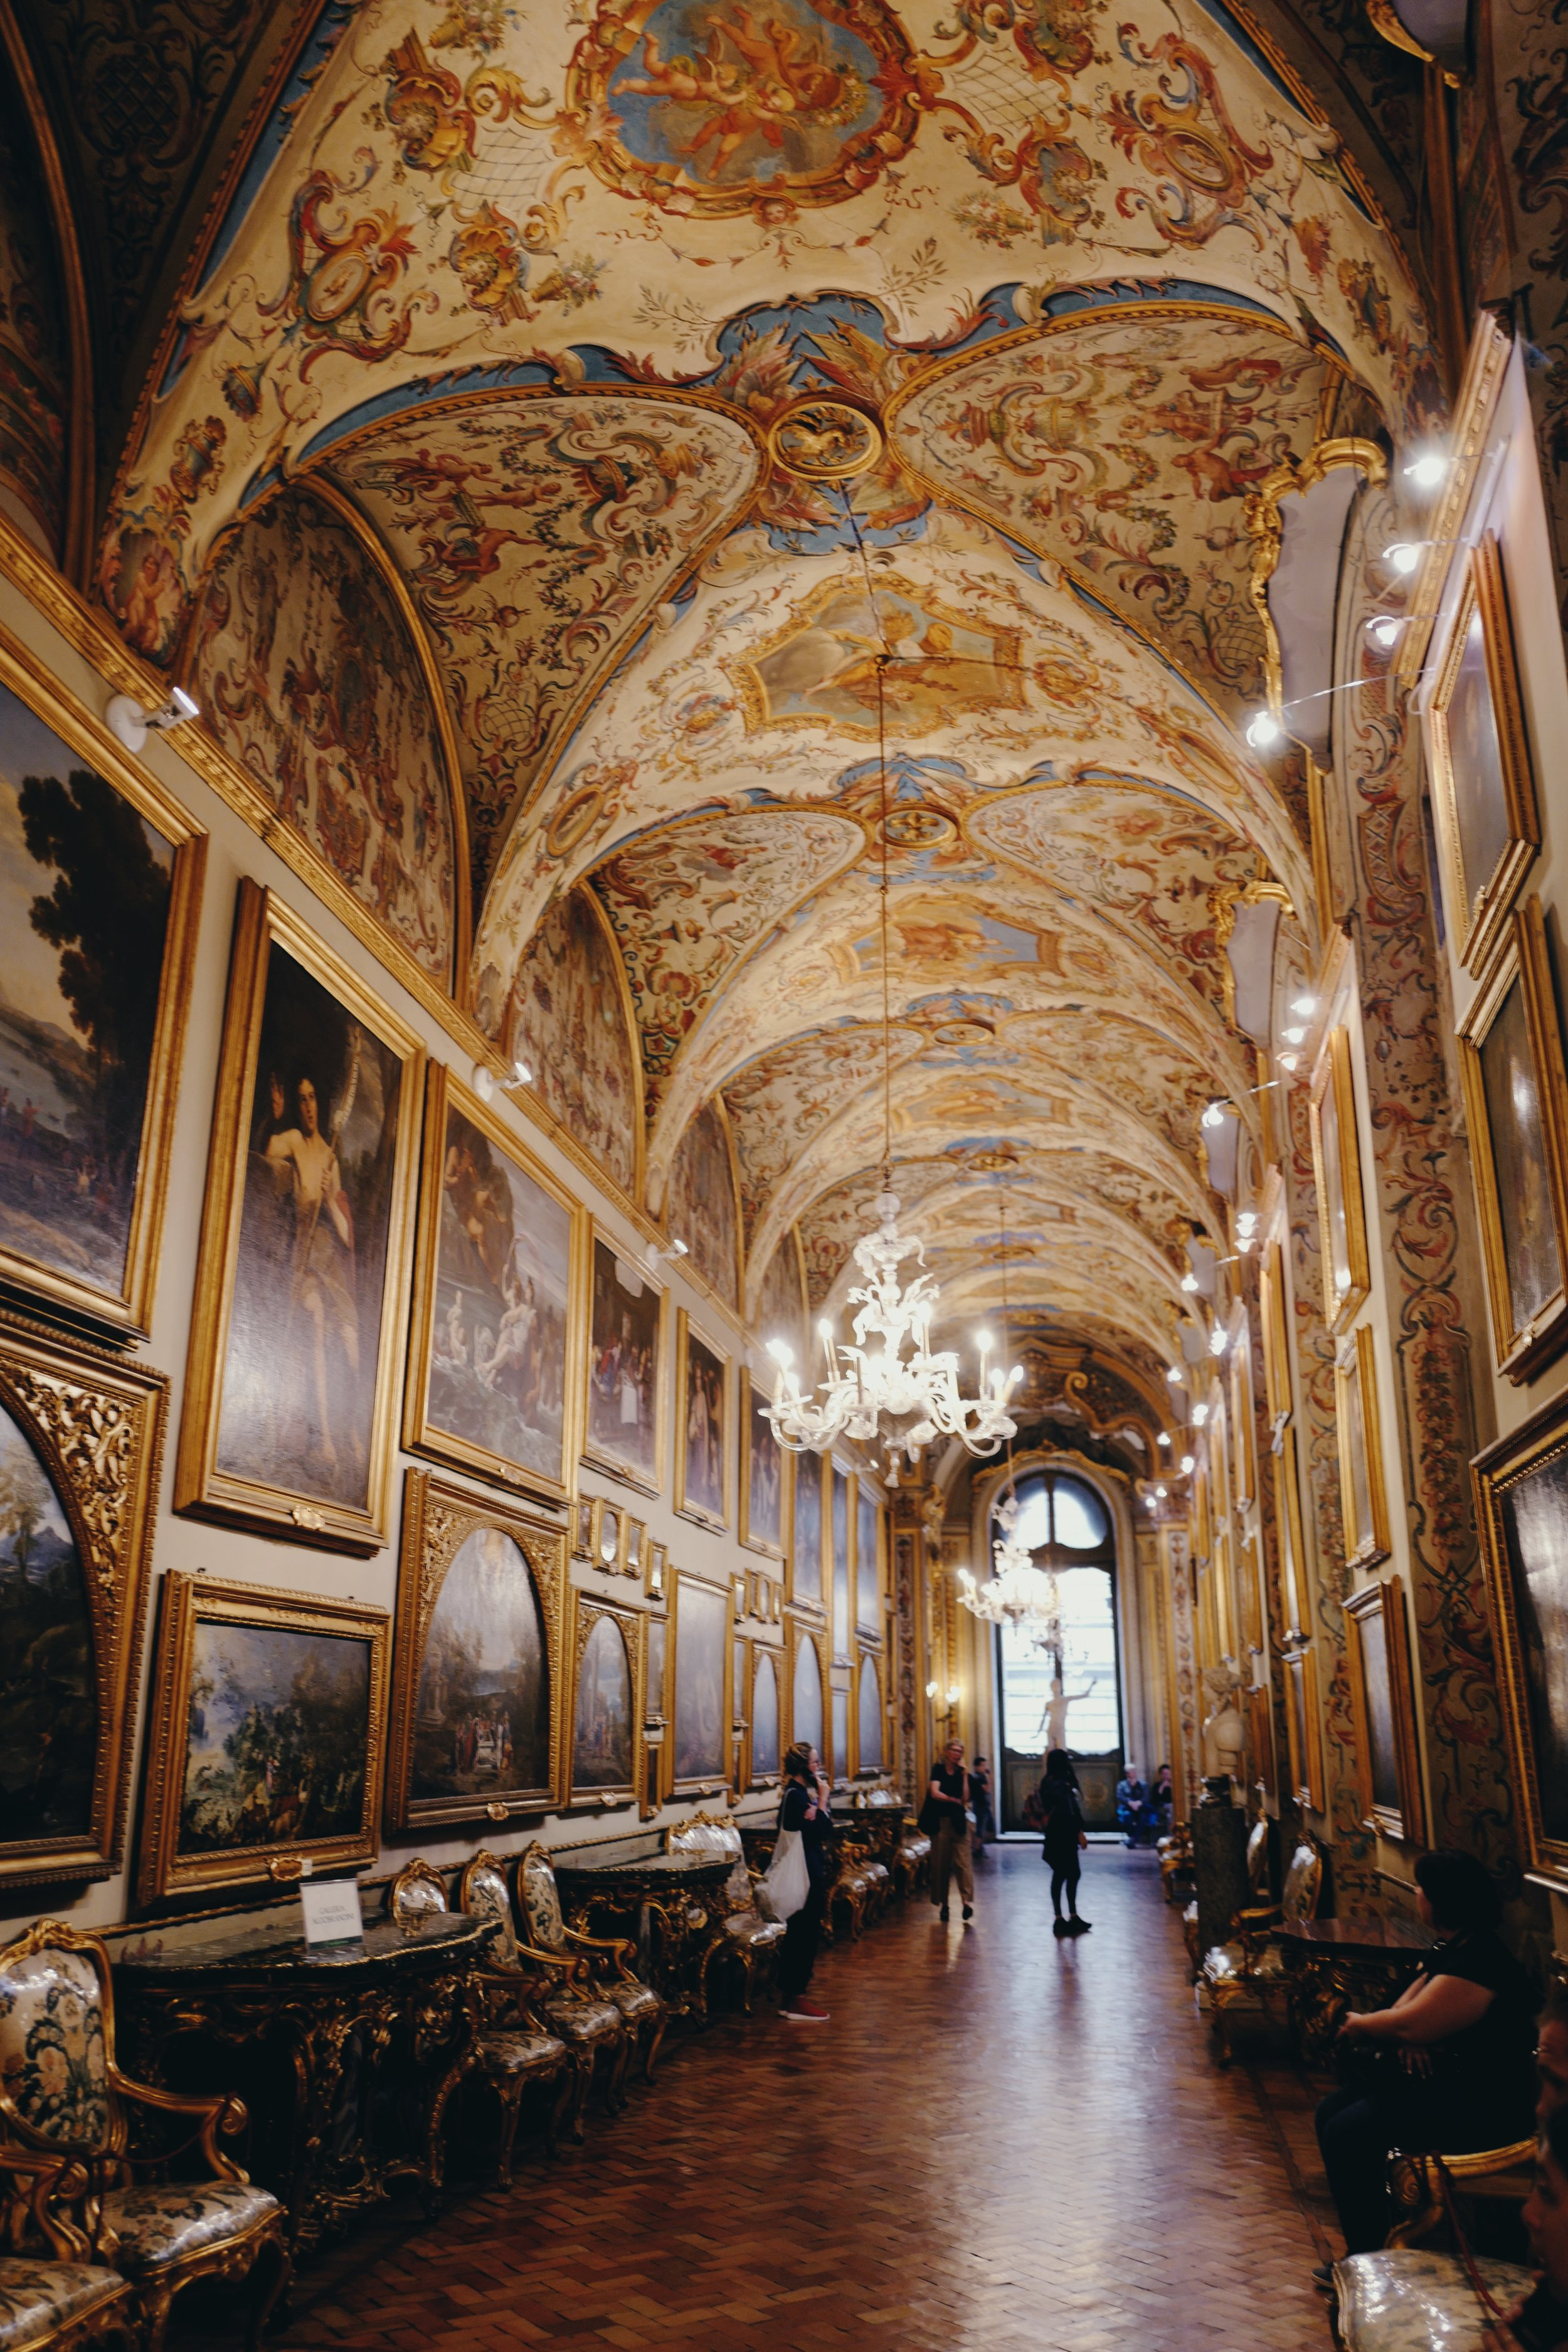 Gallery Doria Pamphilj: Southern Wing